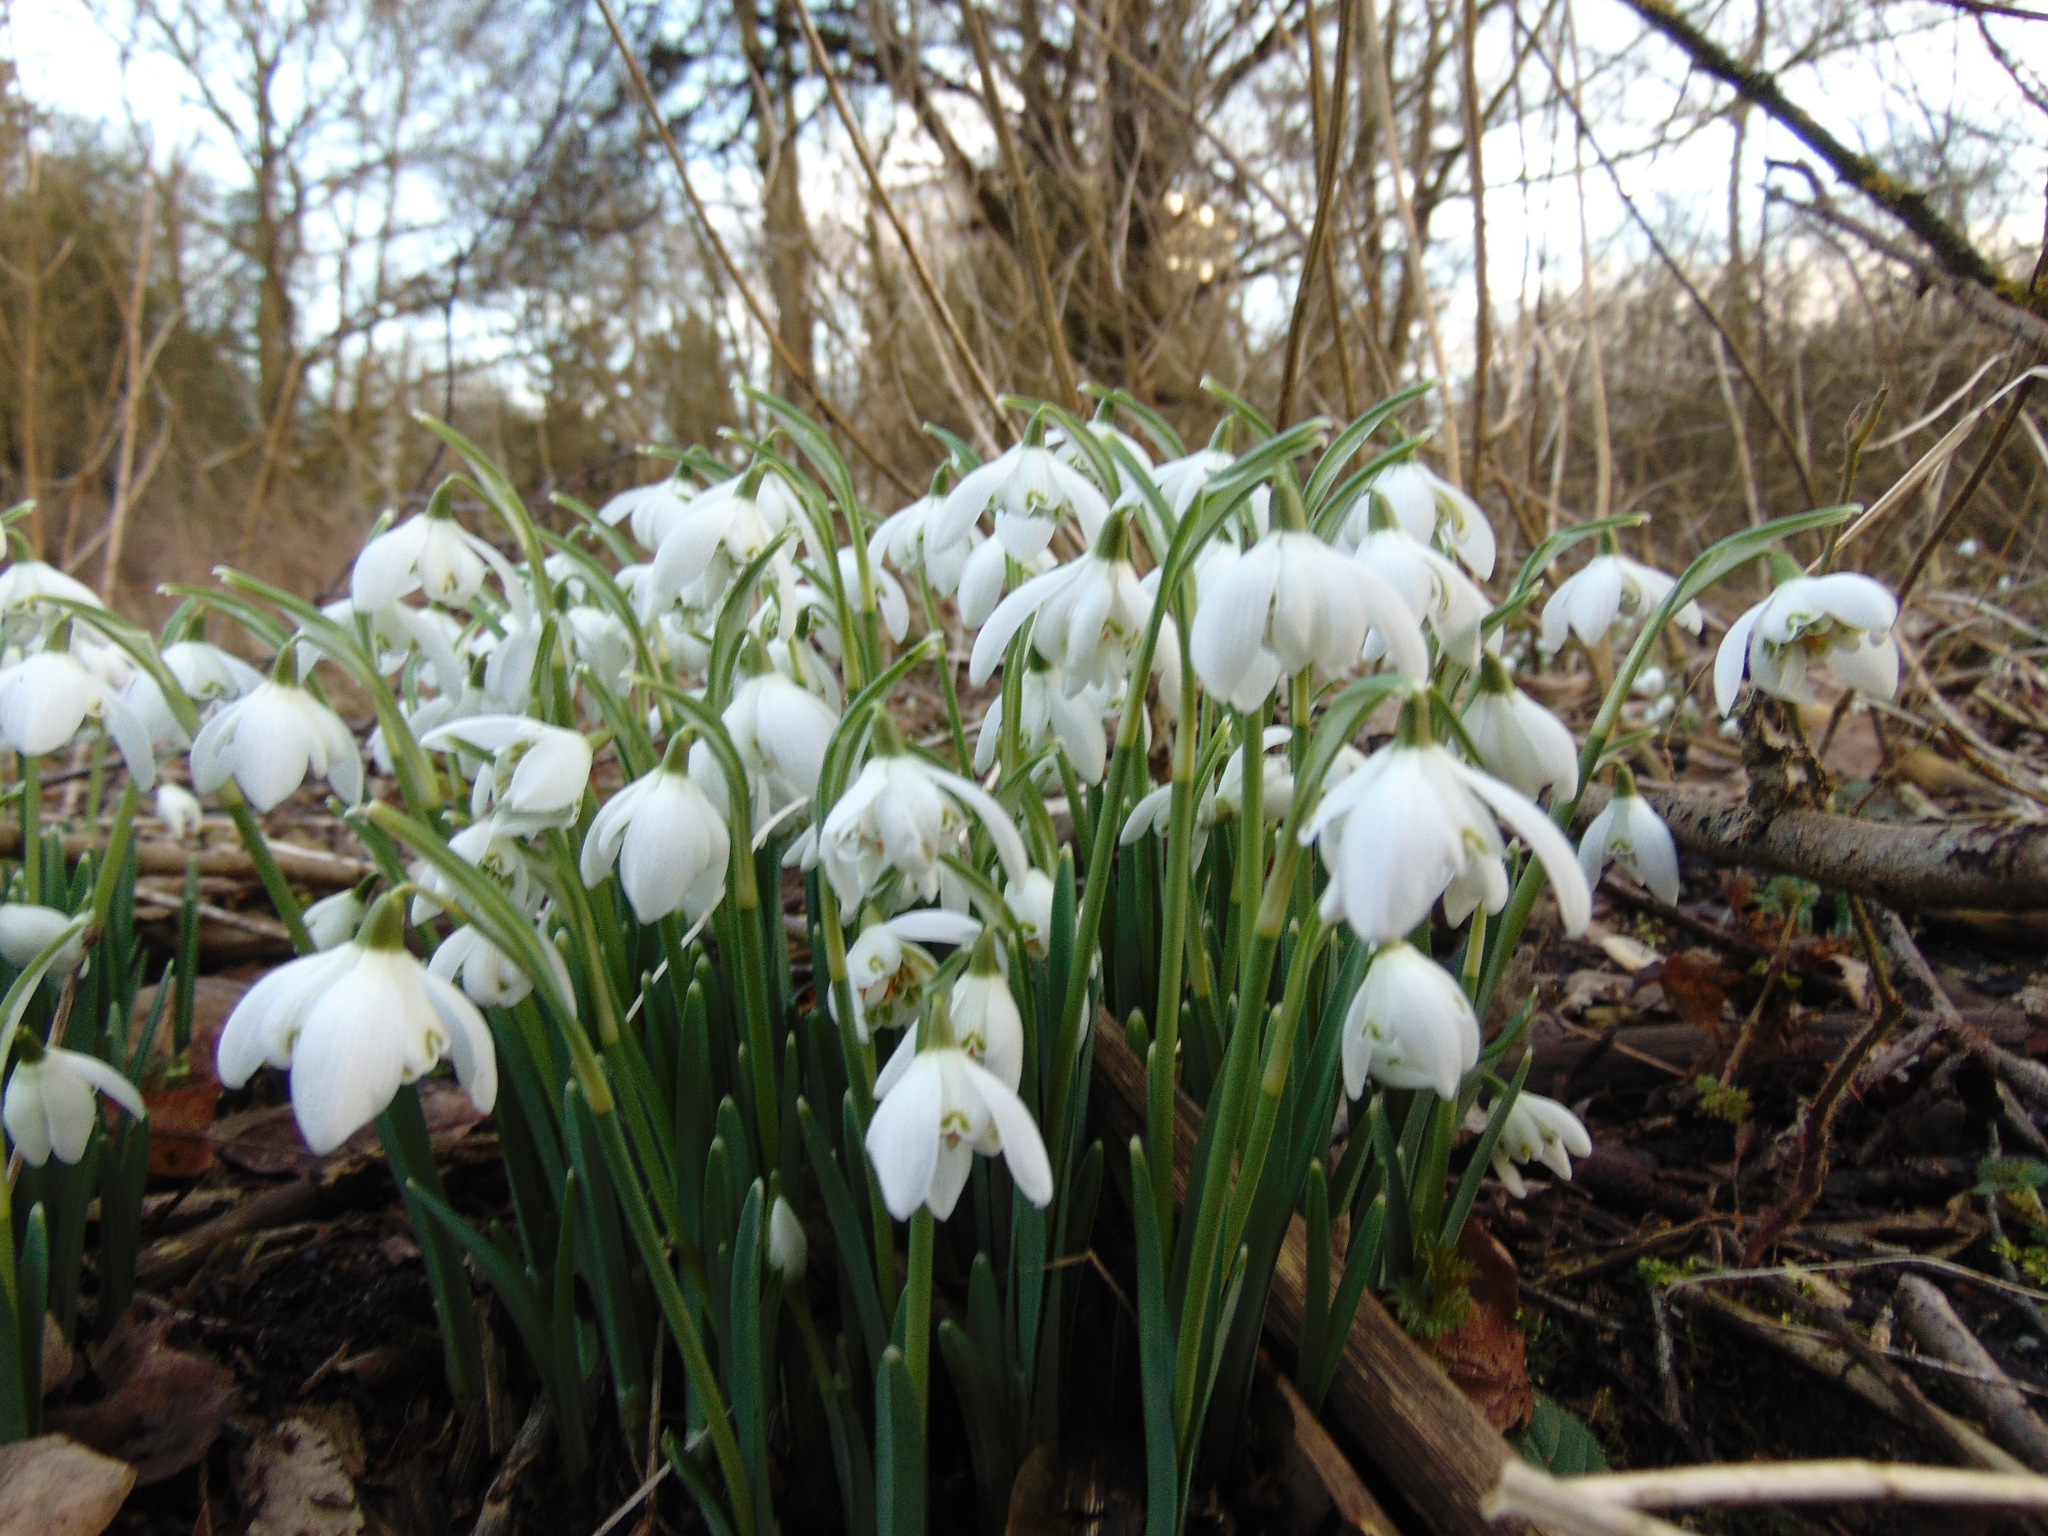 Snowdrops in spring time  by ruth.holland.94